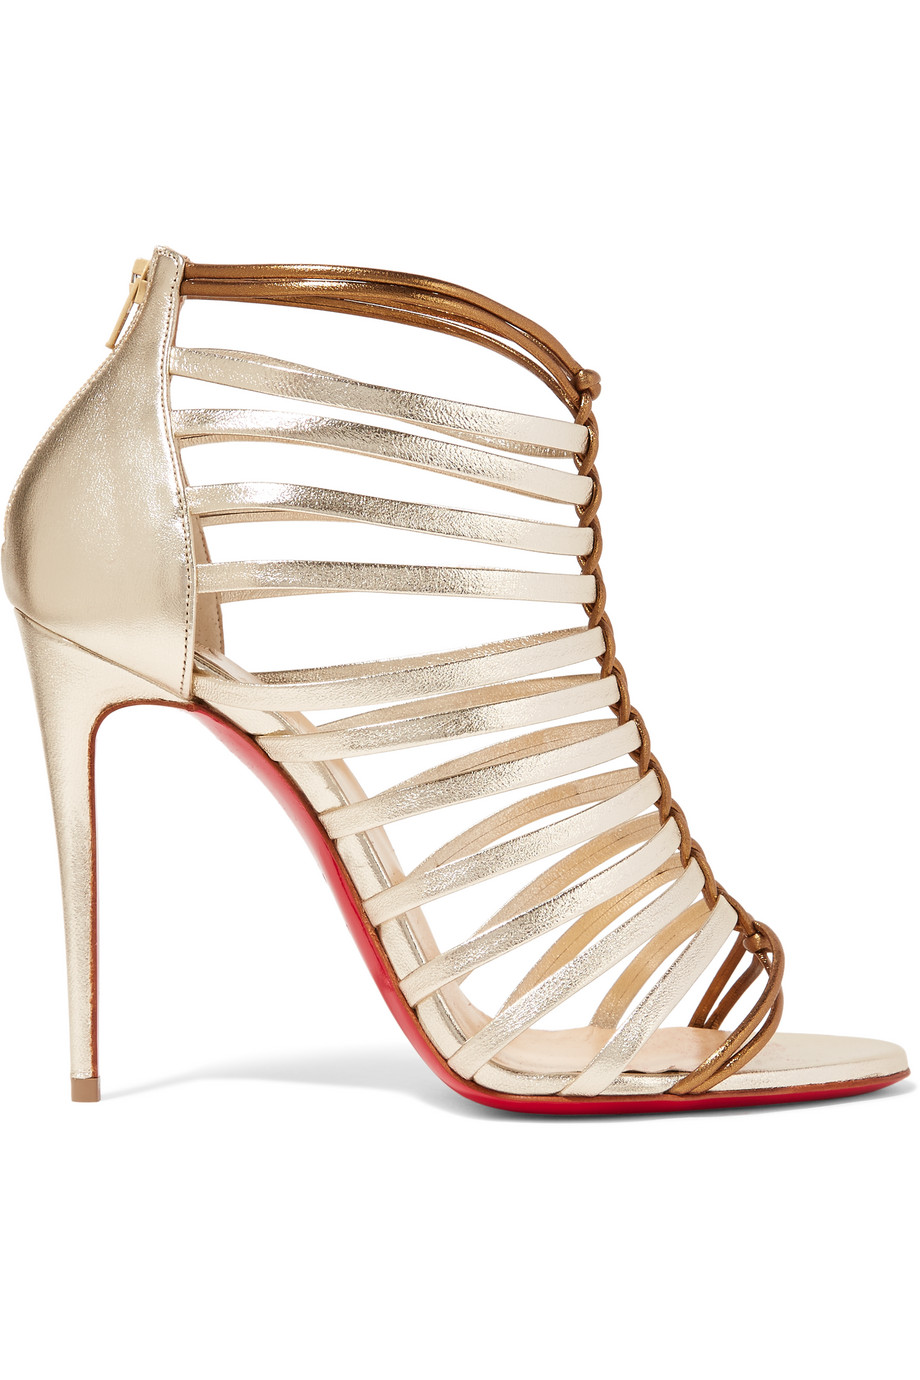 Christian Louboutin Milla 100 Metallic Leather Sandals, Gold, Women's US Size: 4.5, Size: 35